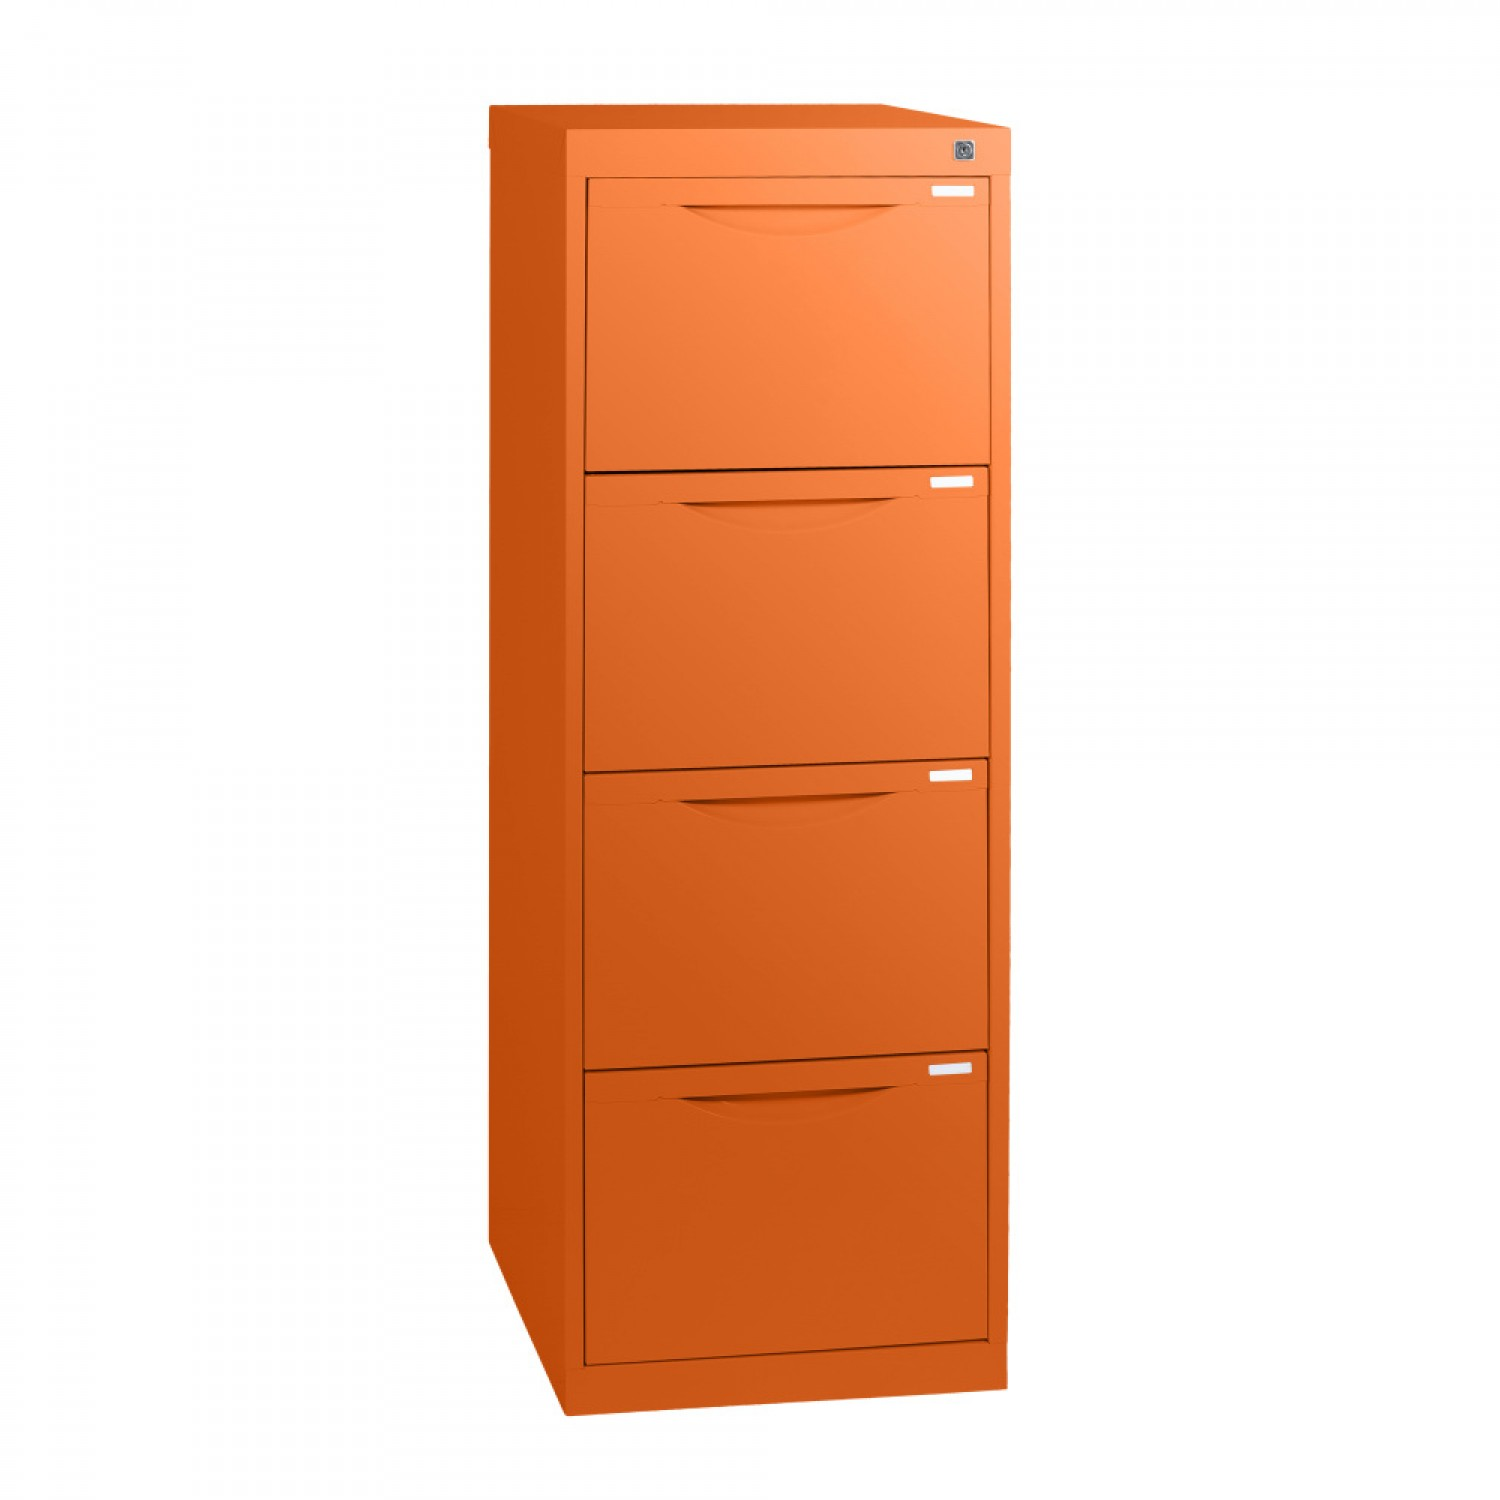 Statewide Homefile Shallow Depth 3 Drawer Filing Cabinet